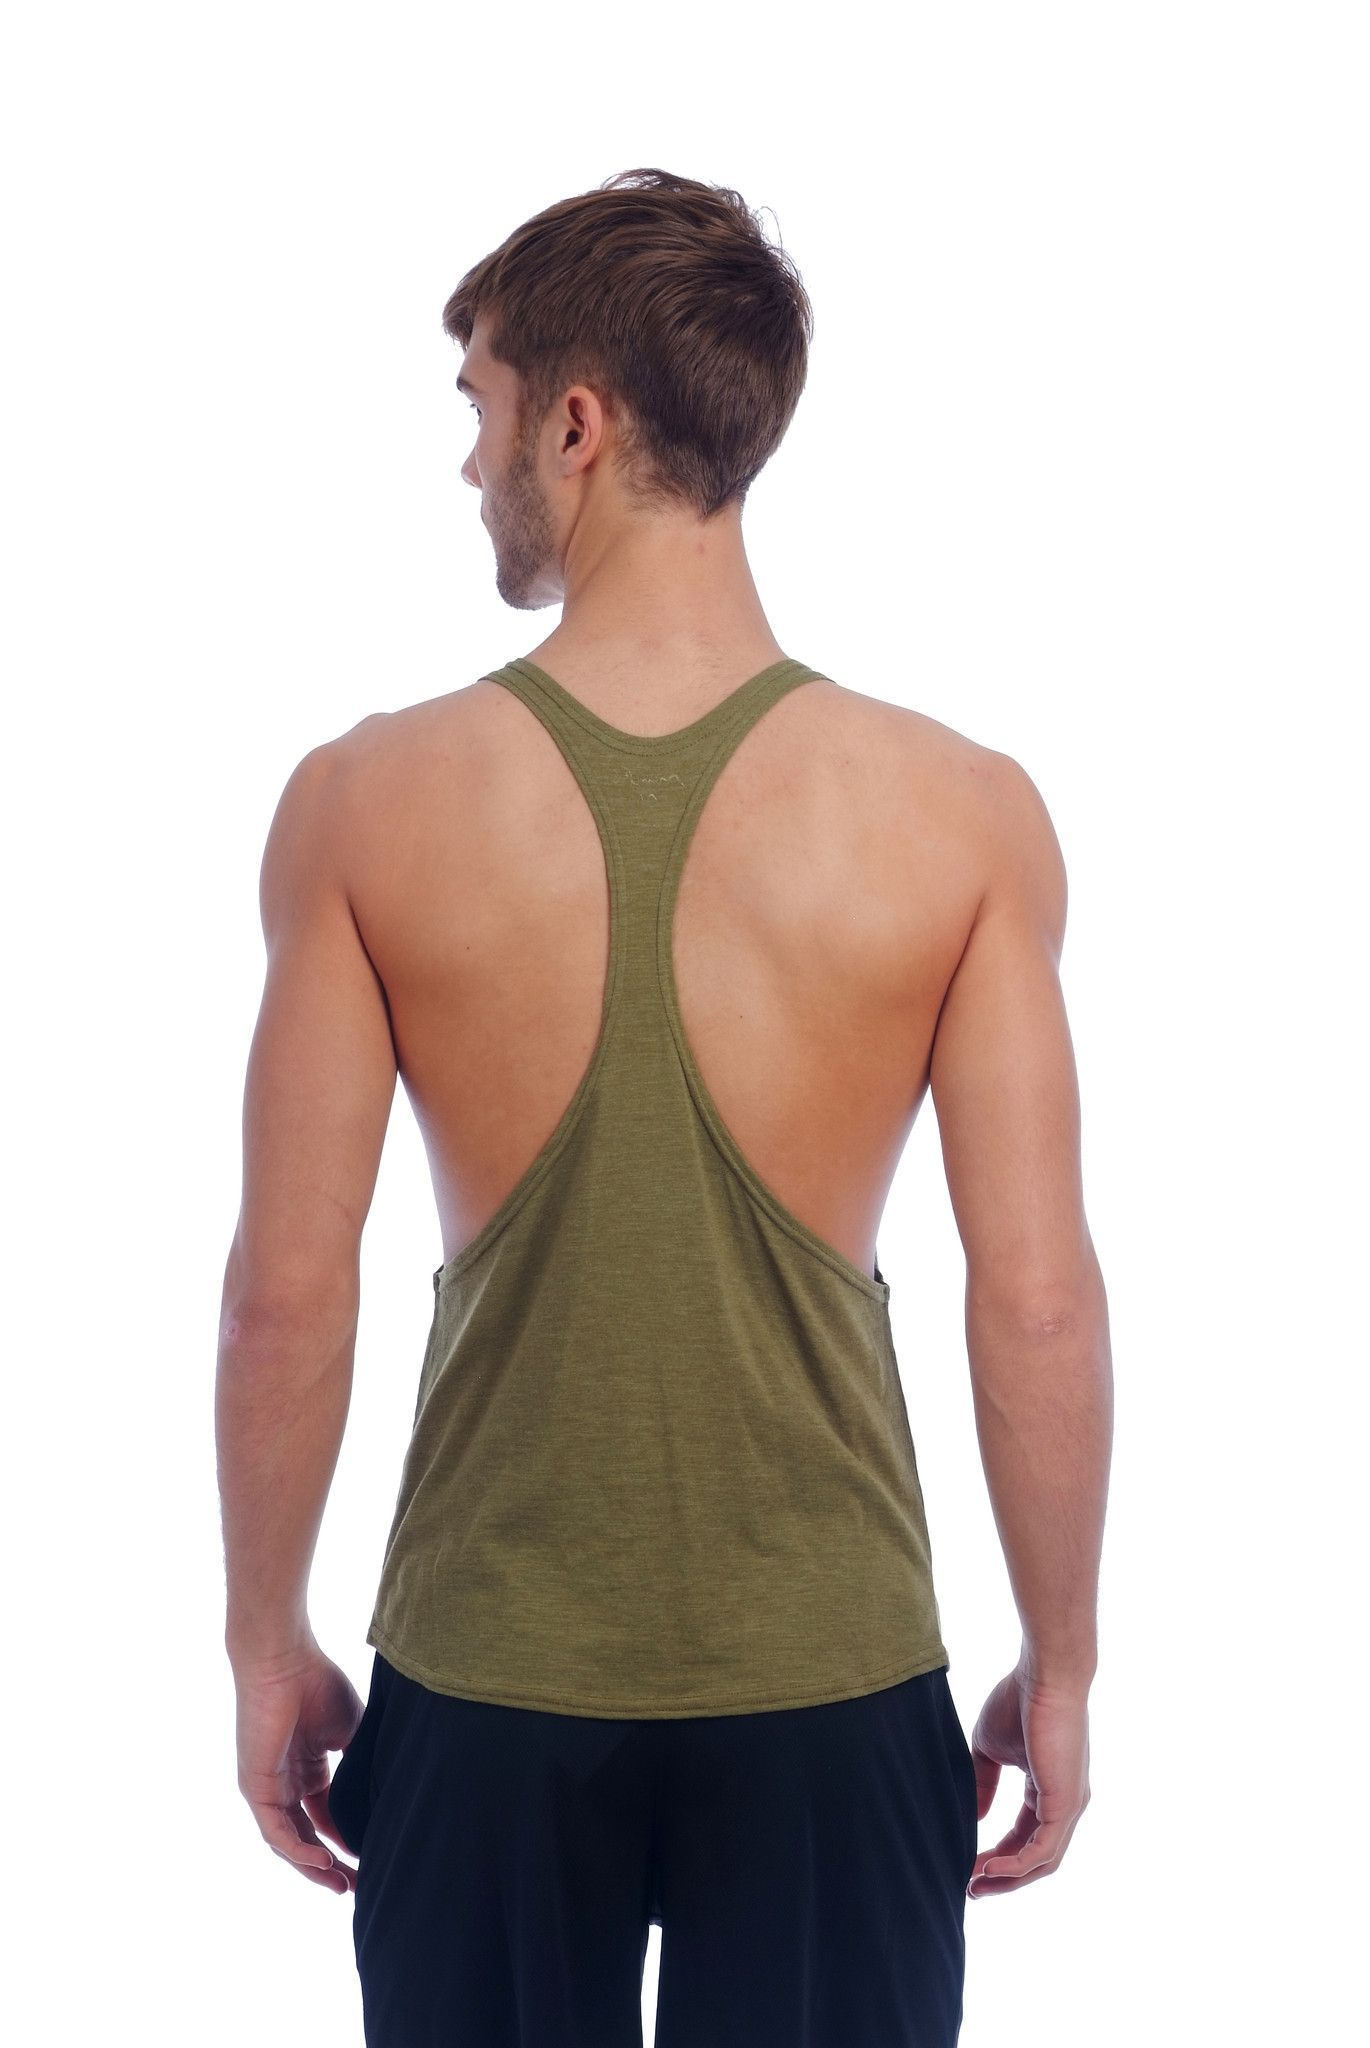 new product 7affa c1b4c T back racerback tank top mode from our Single Jersey cotton ...